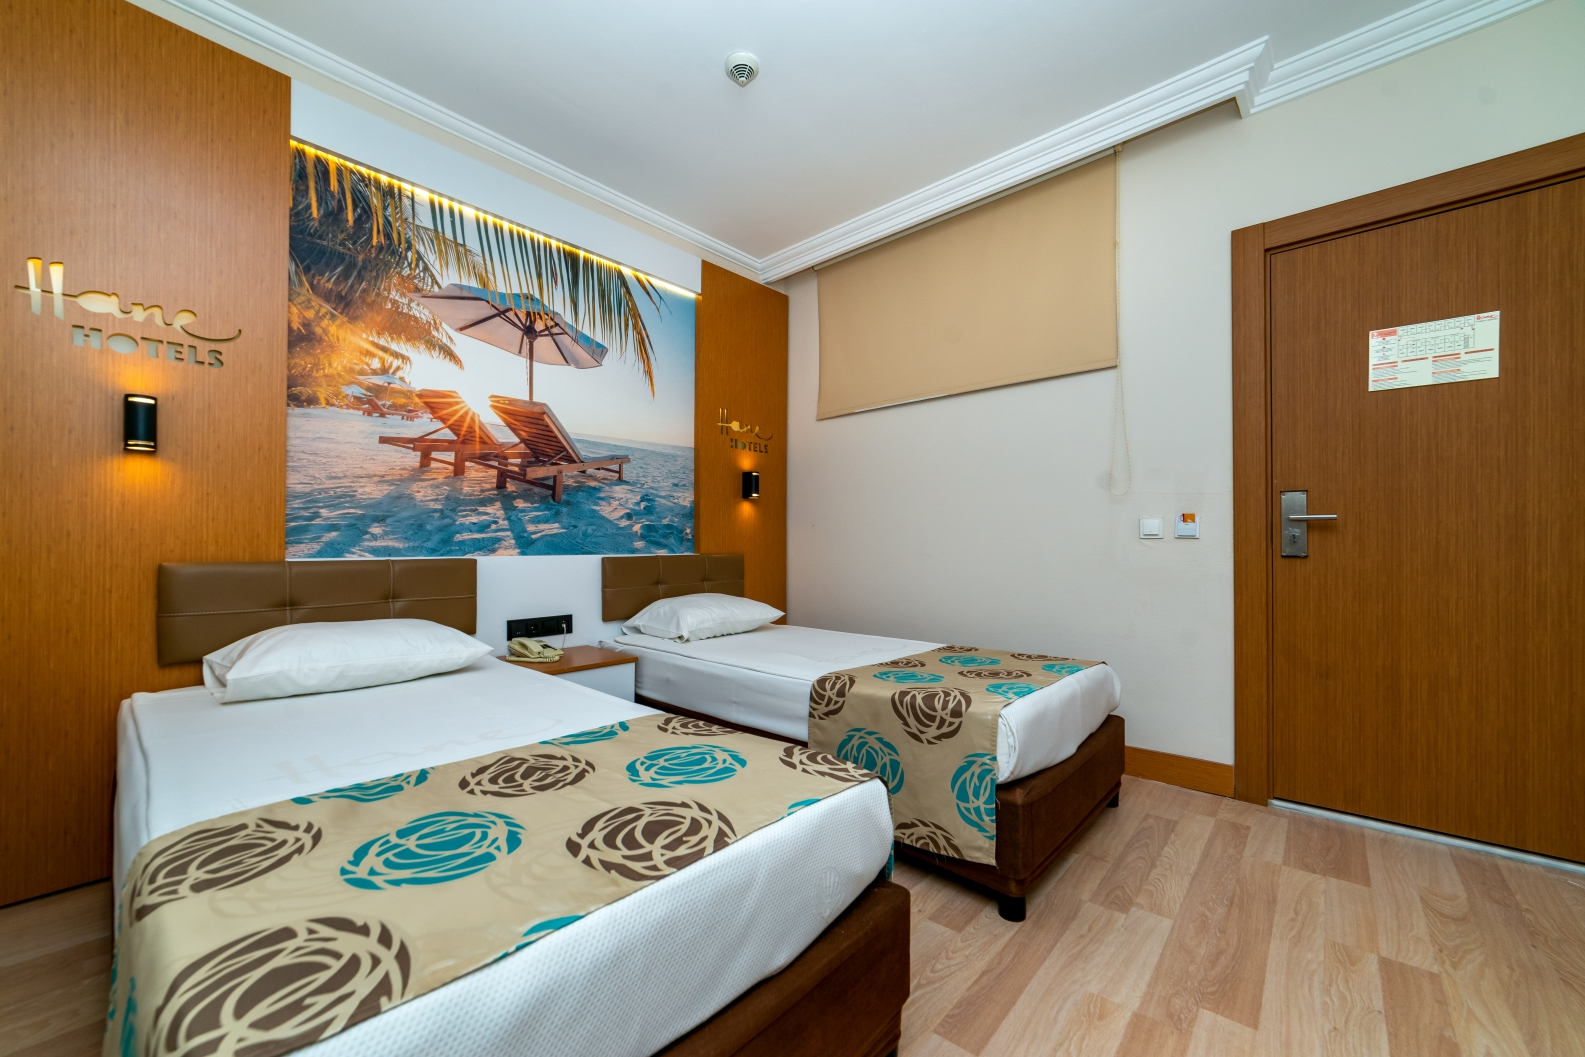 HANE FAMİLY RESORT HOTEL